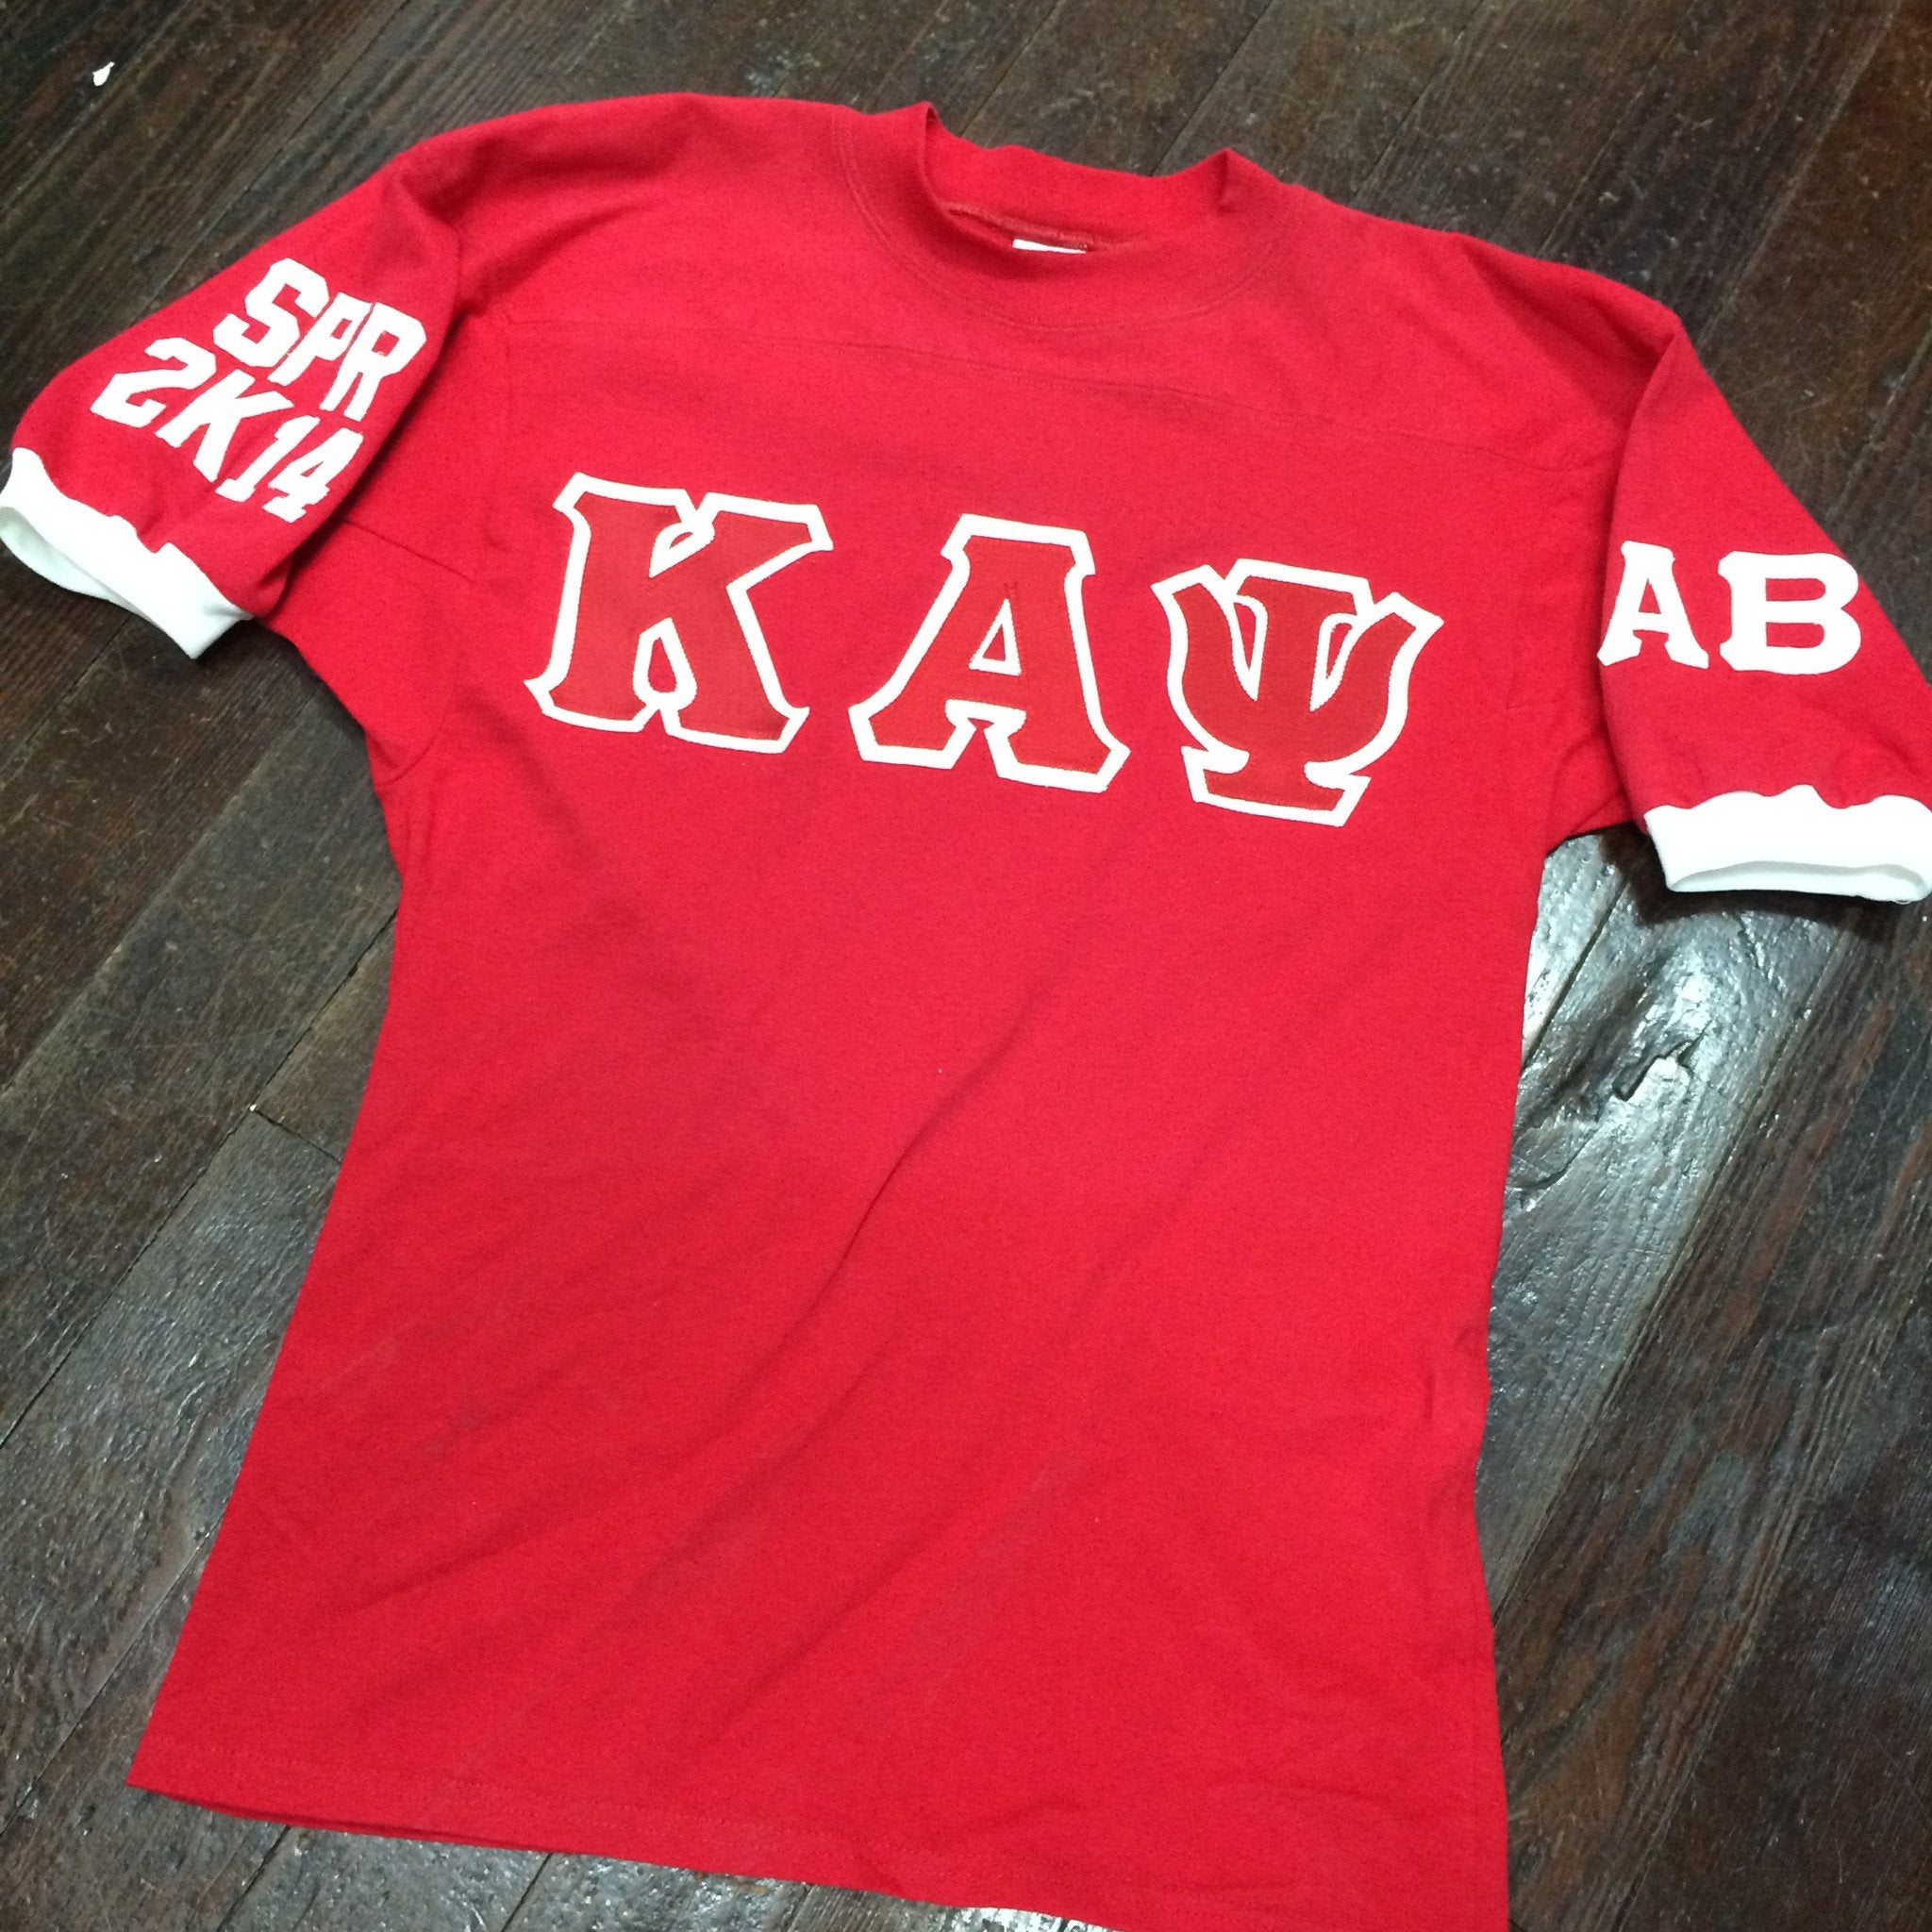 Sewn-Letter Jersey Shirt with Cuffs - Campus Connection - Campus Connection - 1